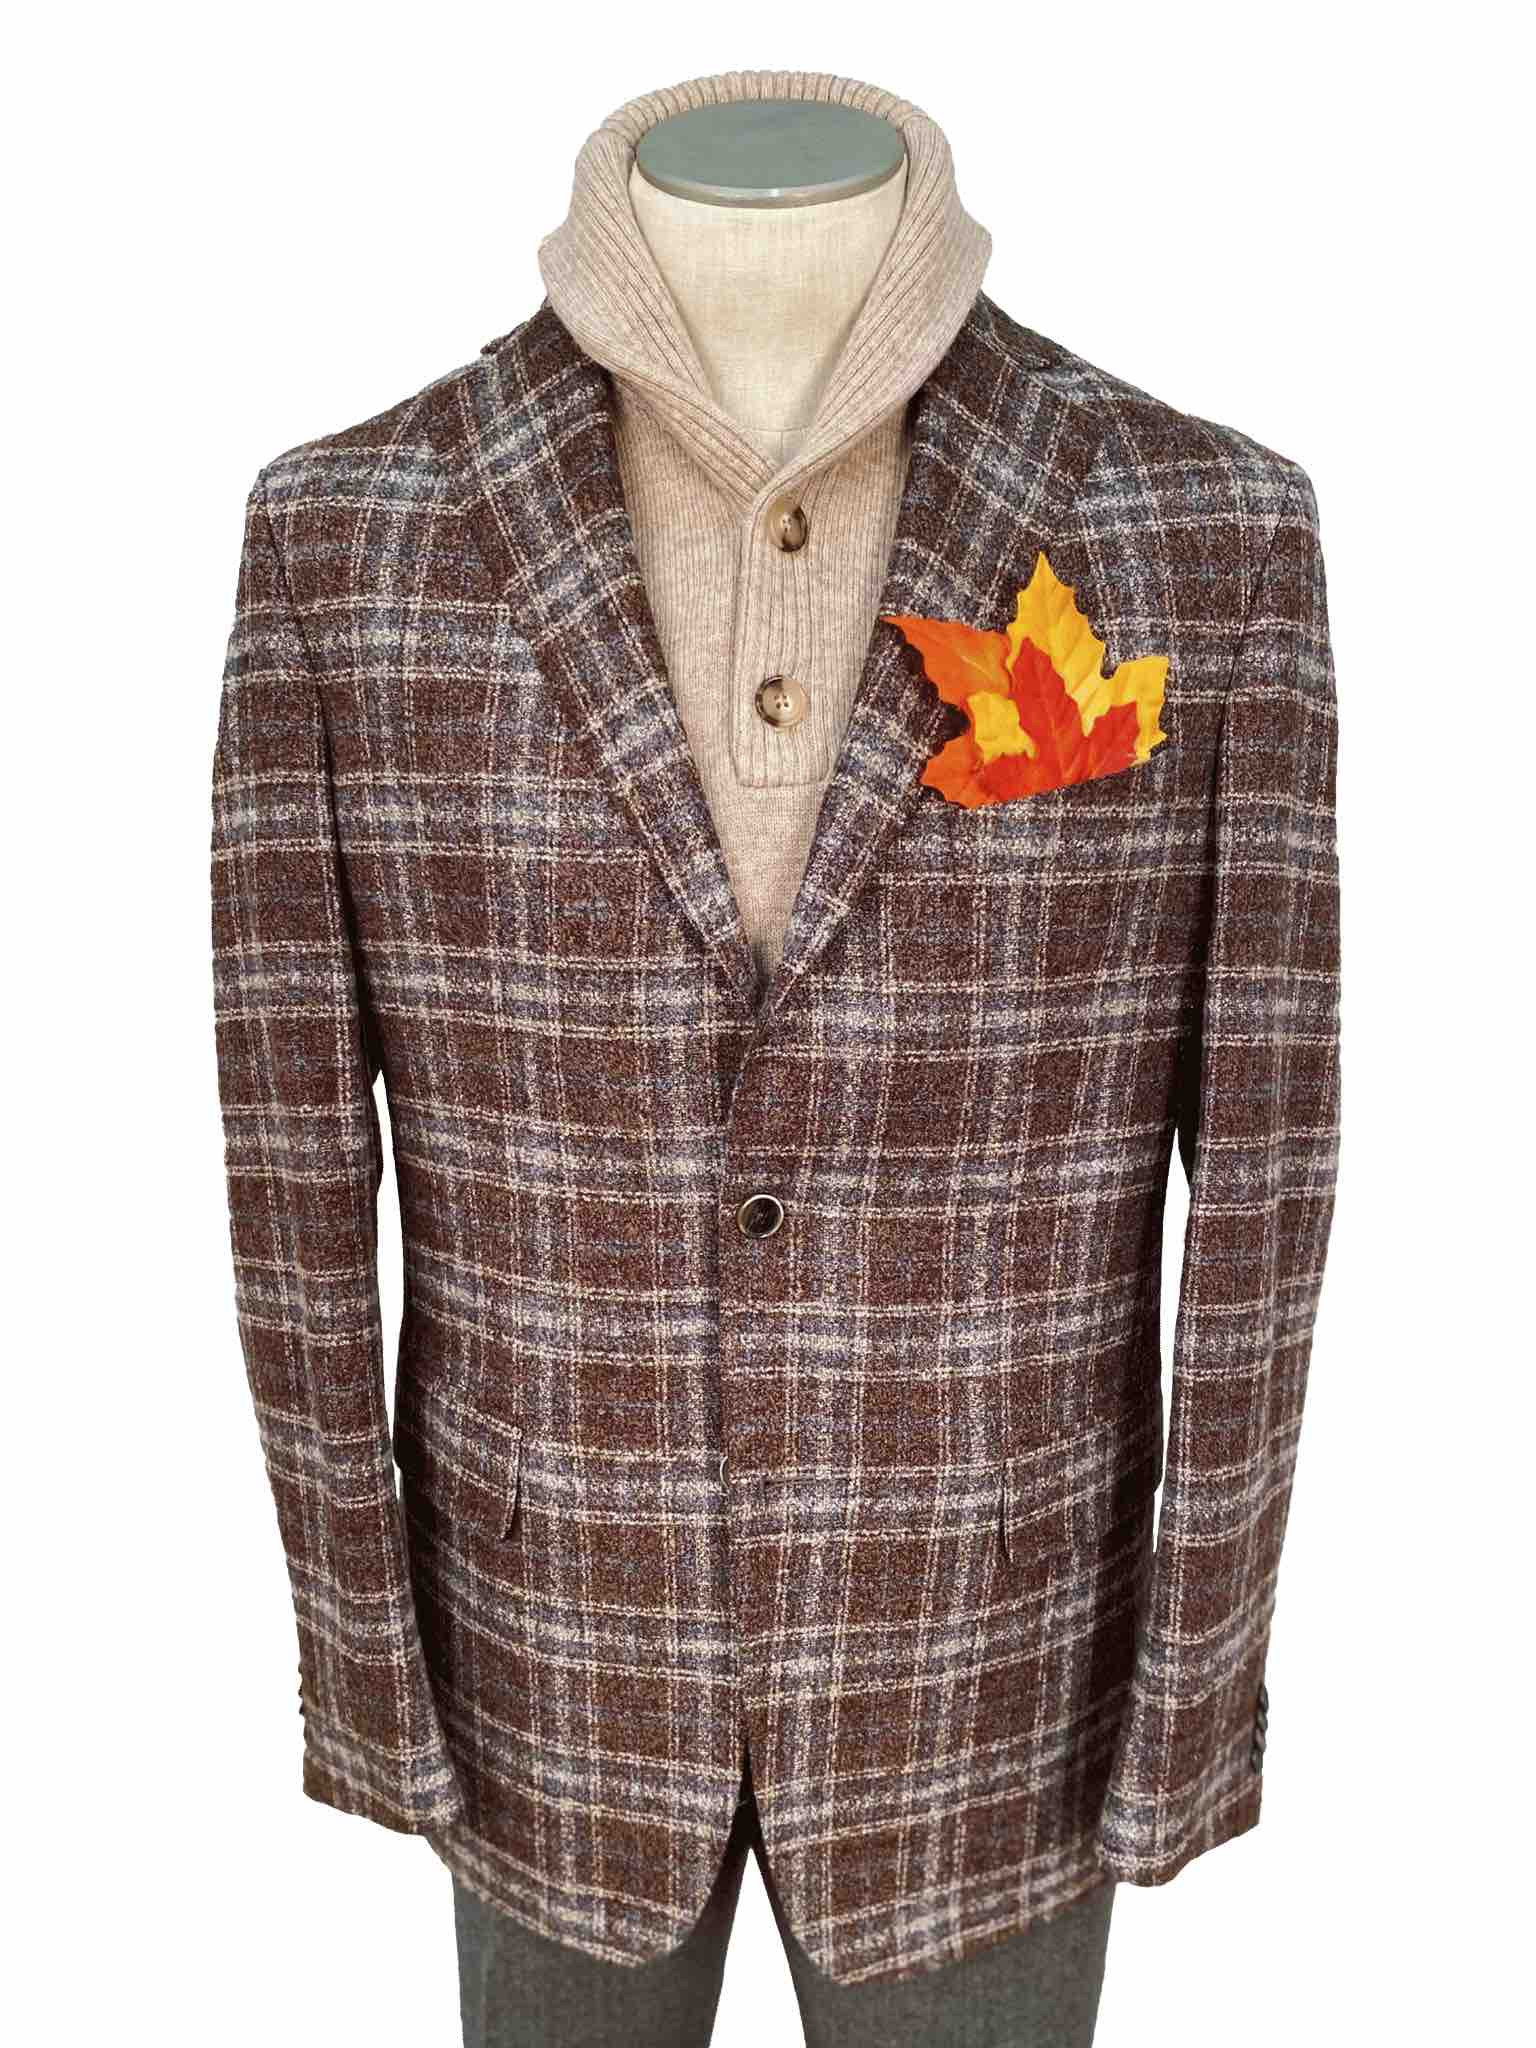 Men's Sport Coat Modern Cut - BROWN PLAID - 48/34/18 WO/SE/PA